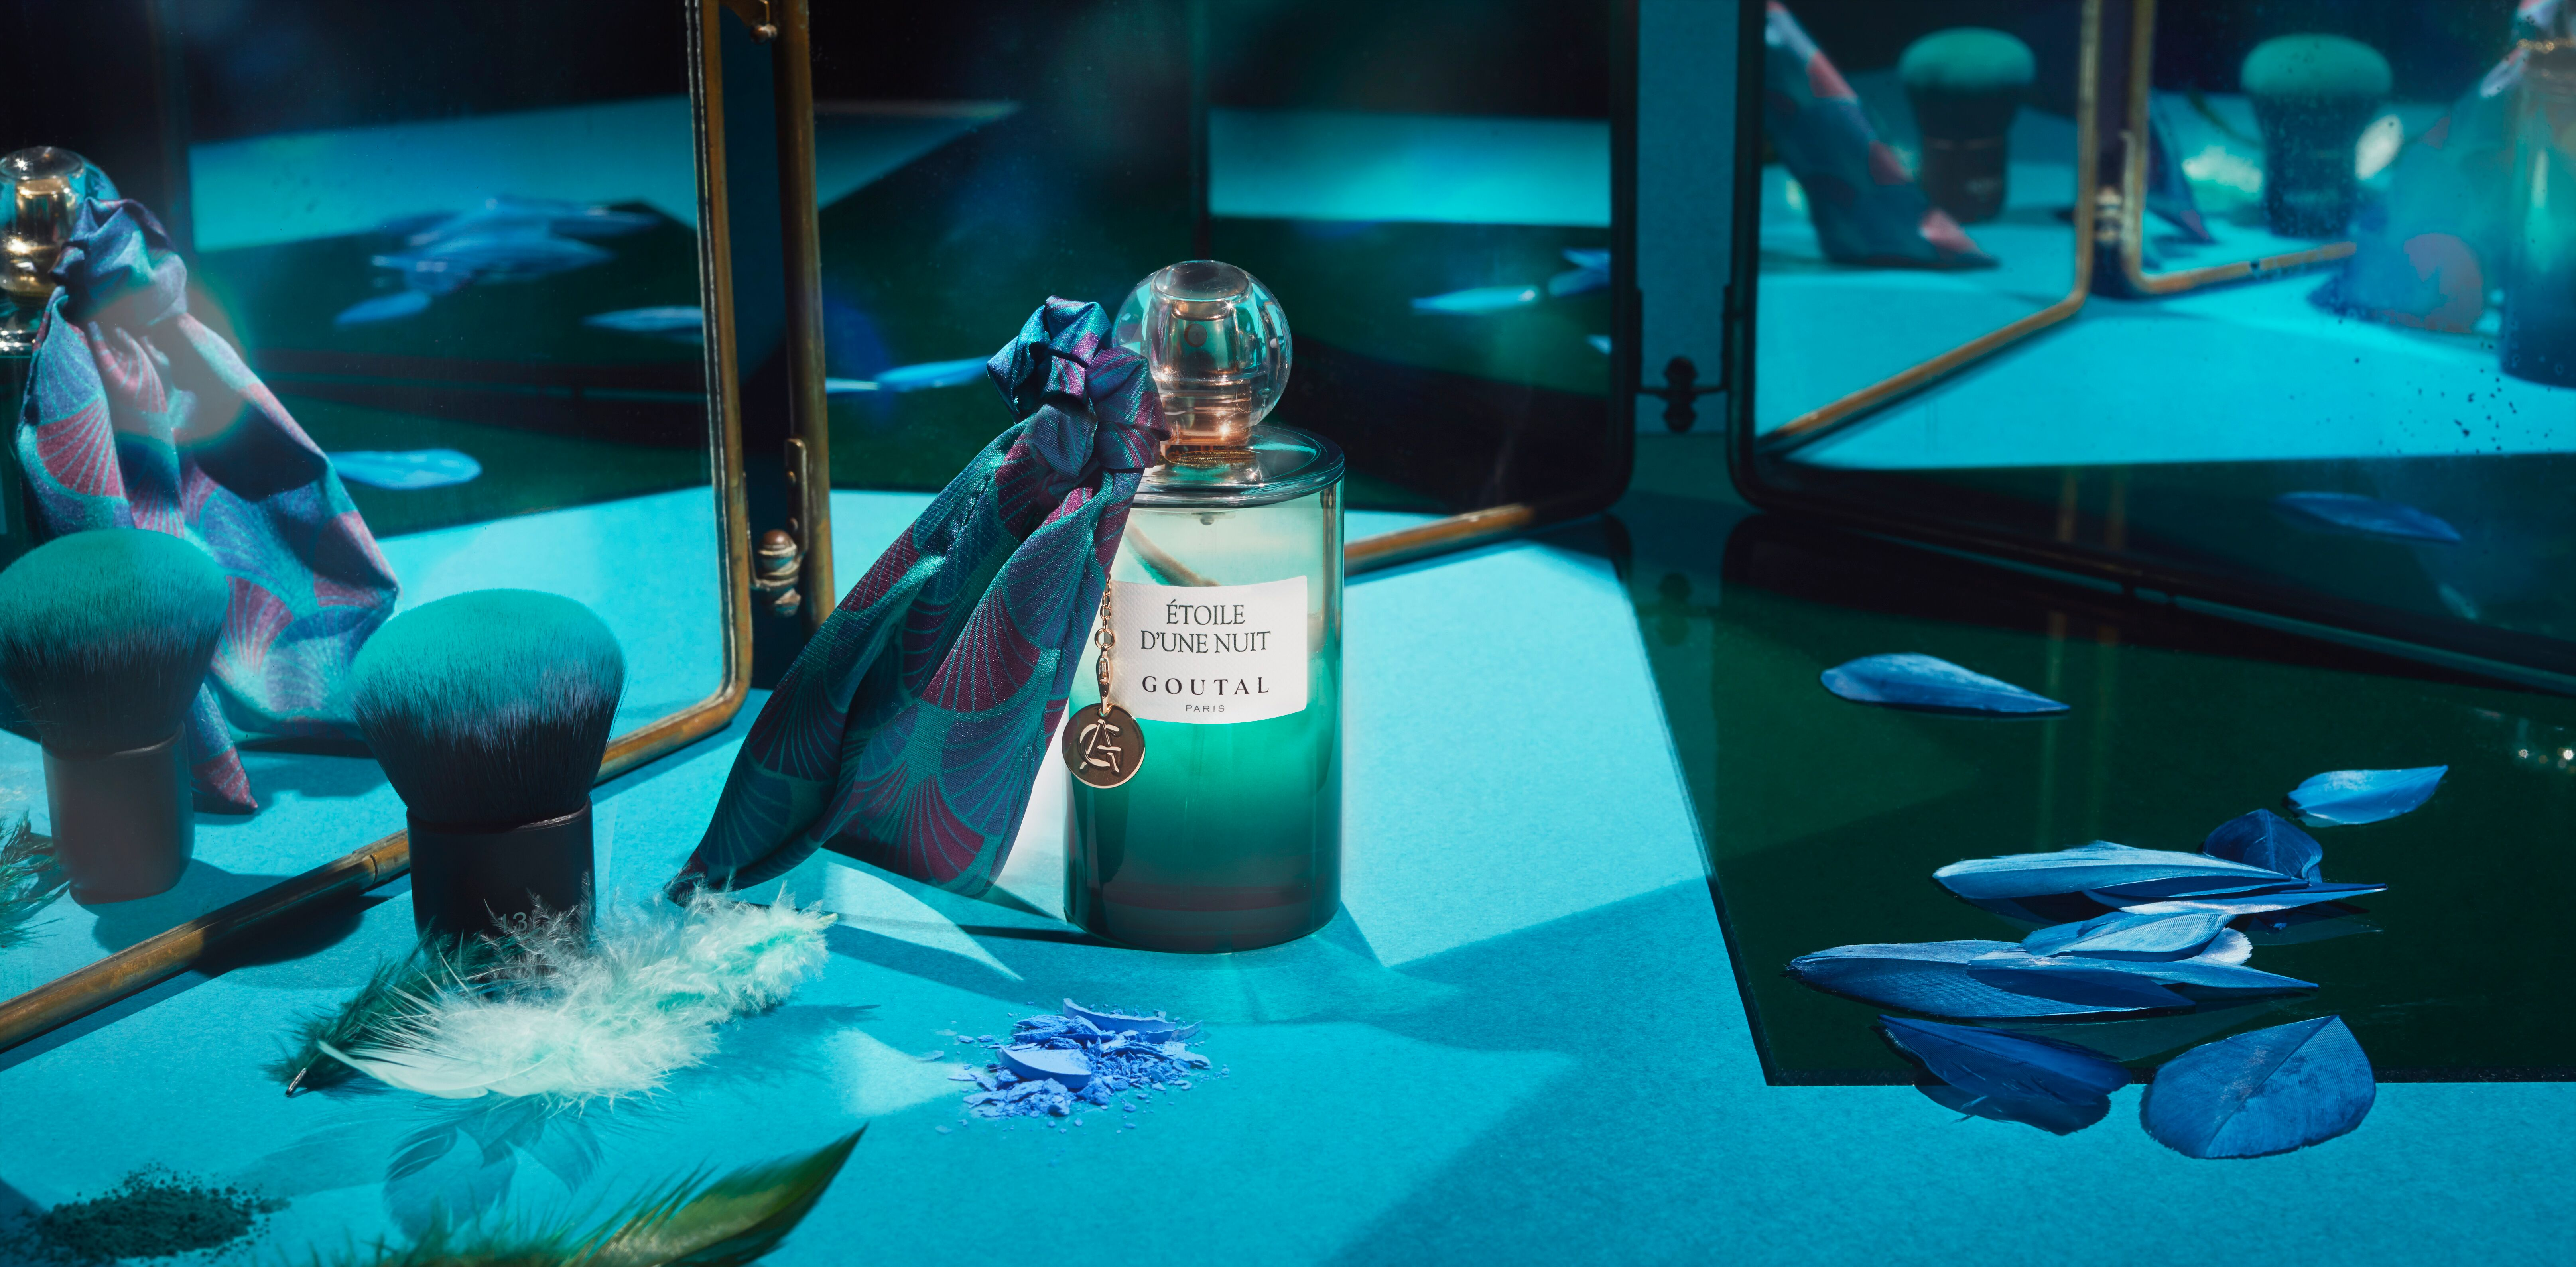 The new perfume Etoile d'Une Nuit